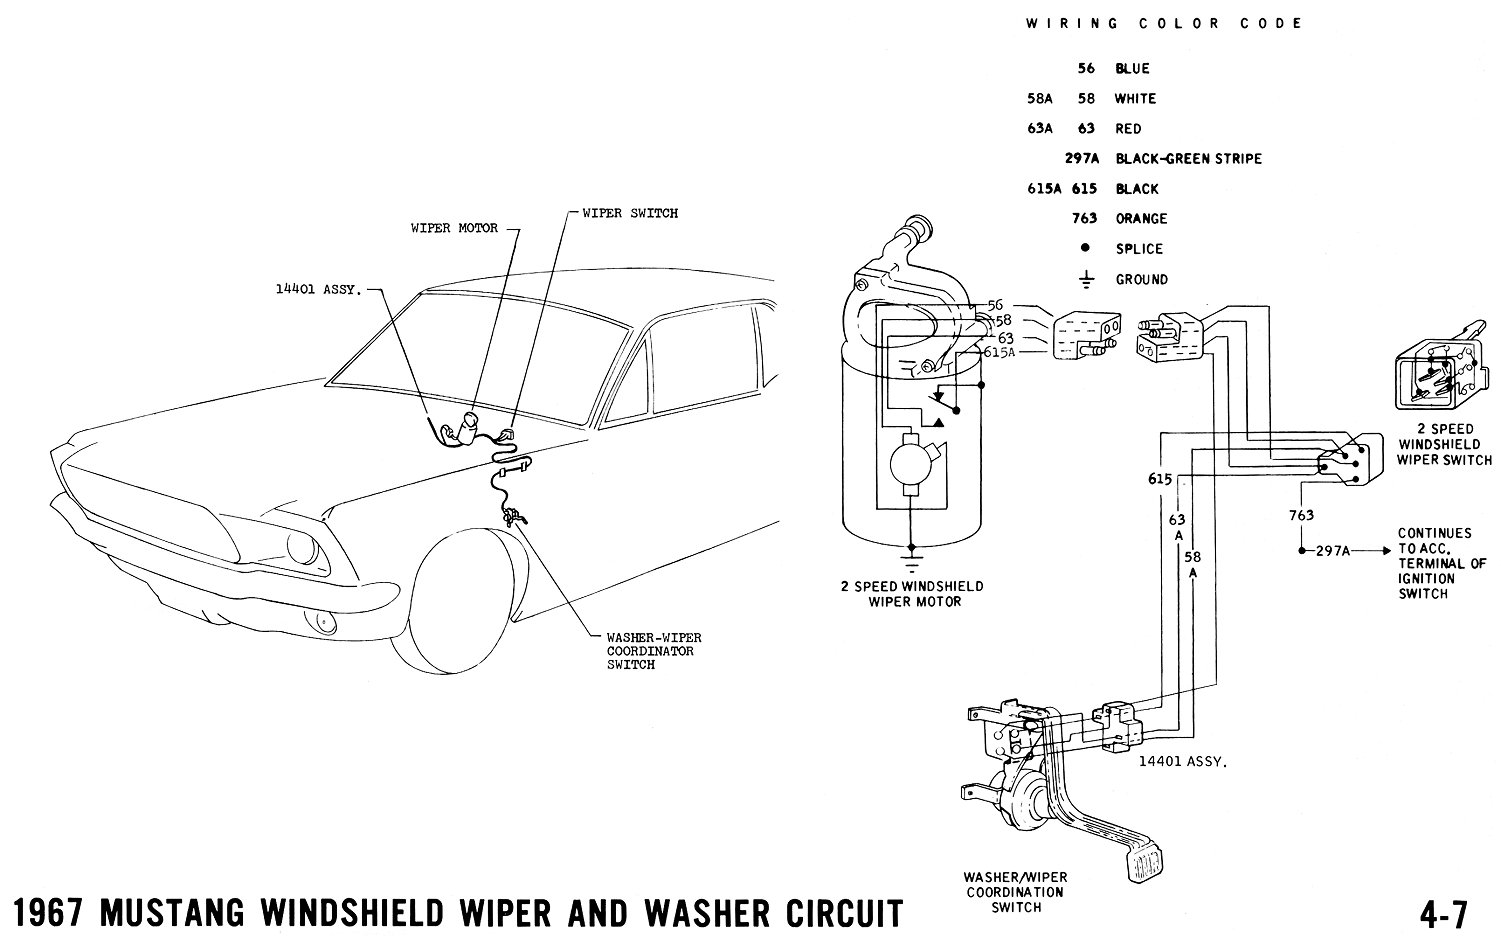 67wiper gm wiper motor wiring diagram universal wiper switch wiring engine wiring diagram 1967 mustang v8 at mifinder.co